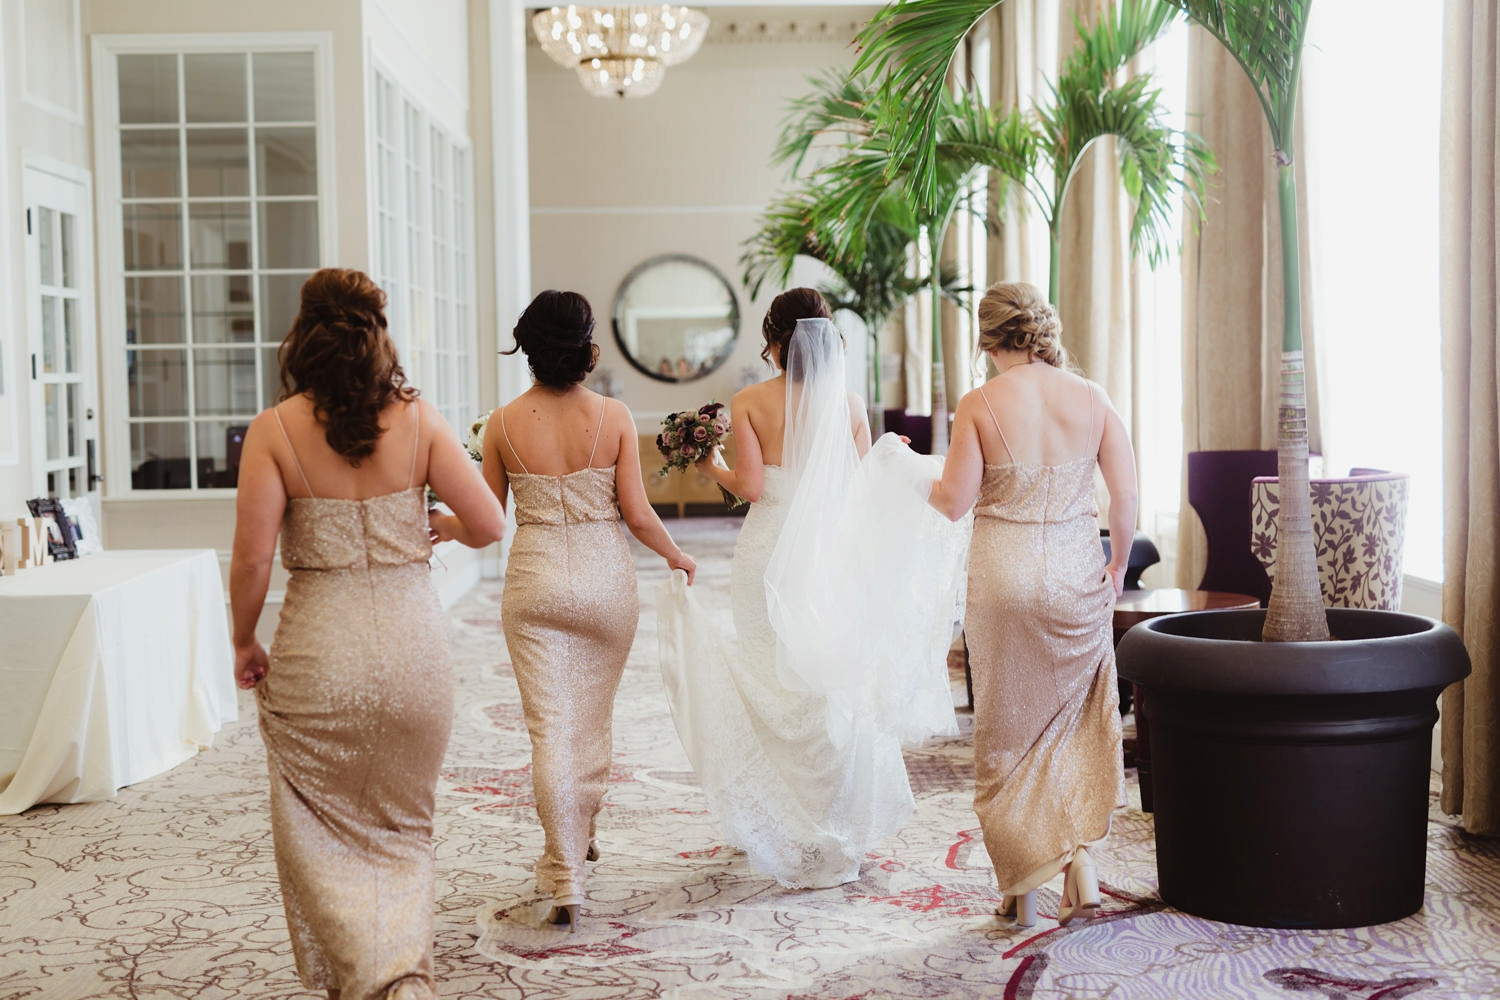 bride walking with her bridesmaids in the pere marquette hotel for her wedding